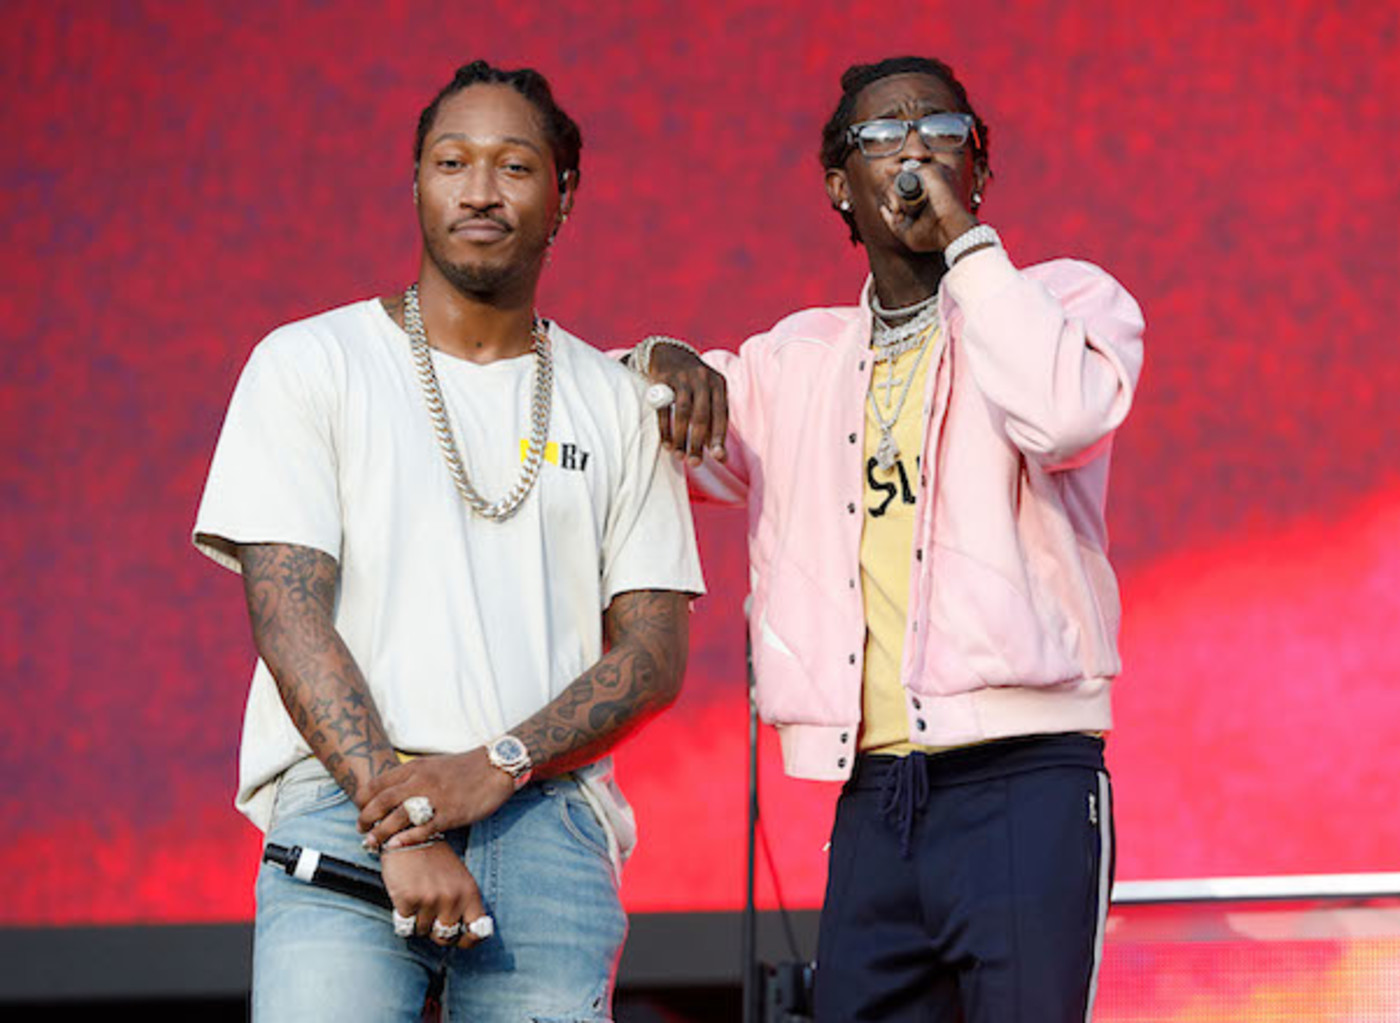 Young Thug and Future in New York City